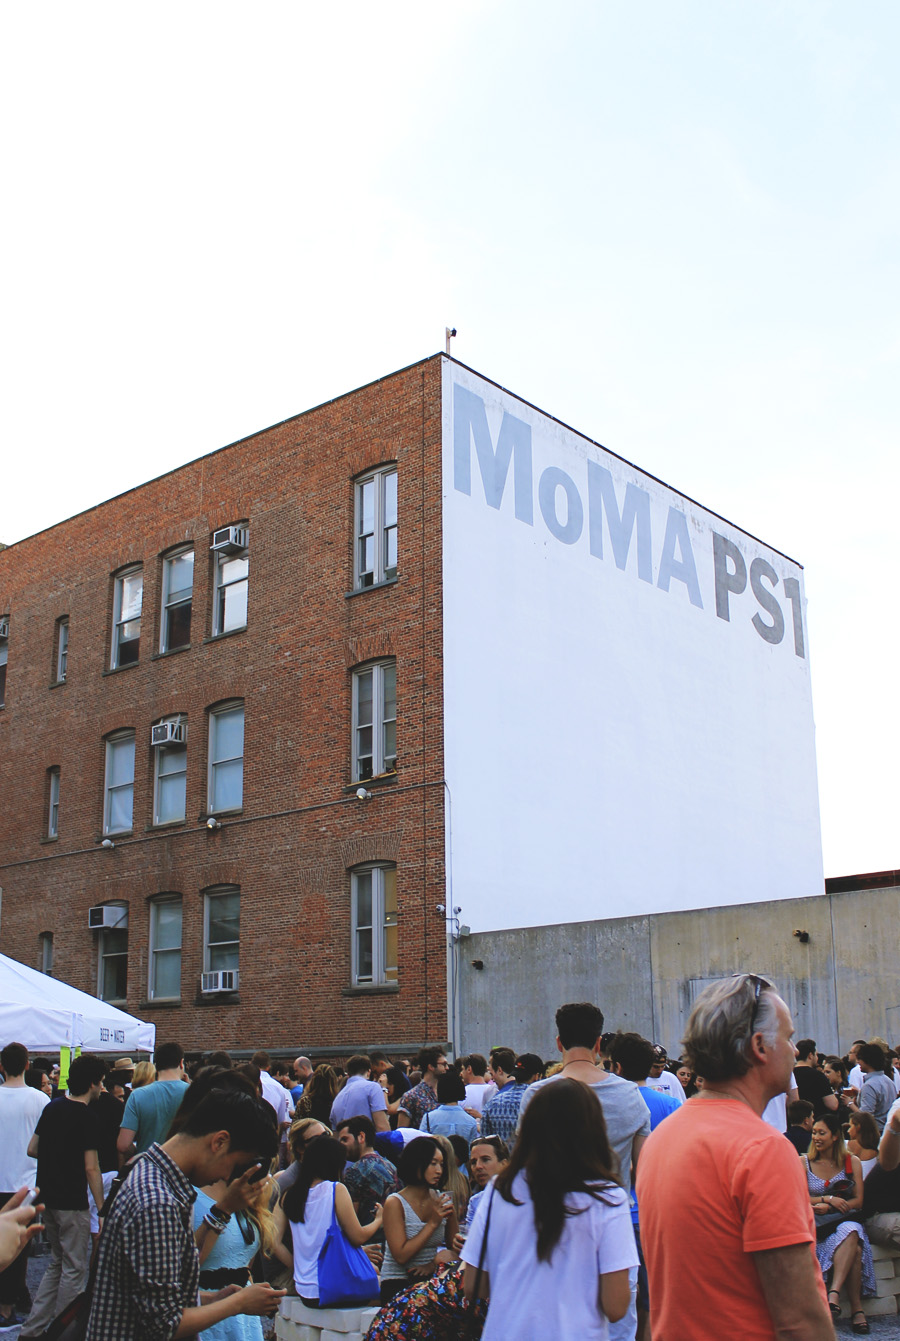 moma ps1 queens courtyard summer warm up saturday